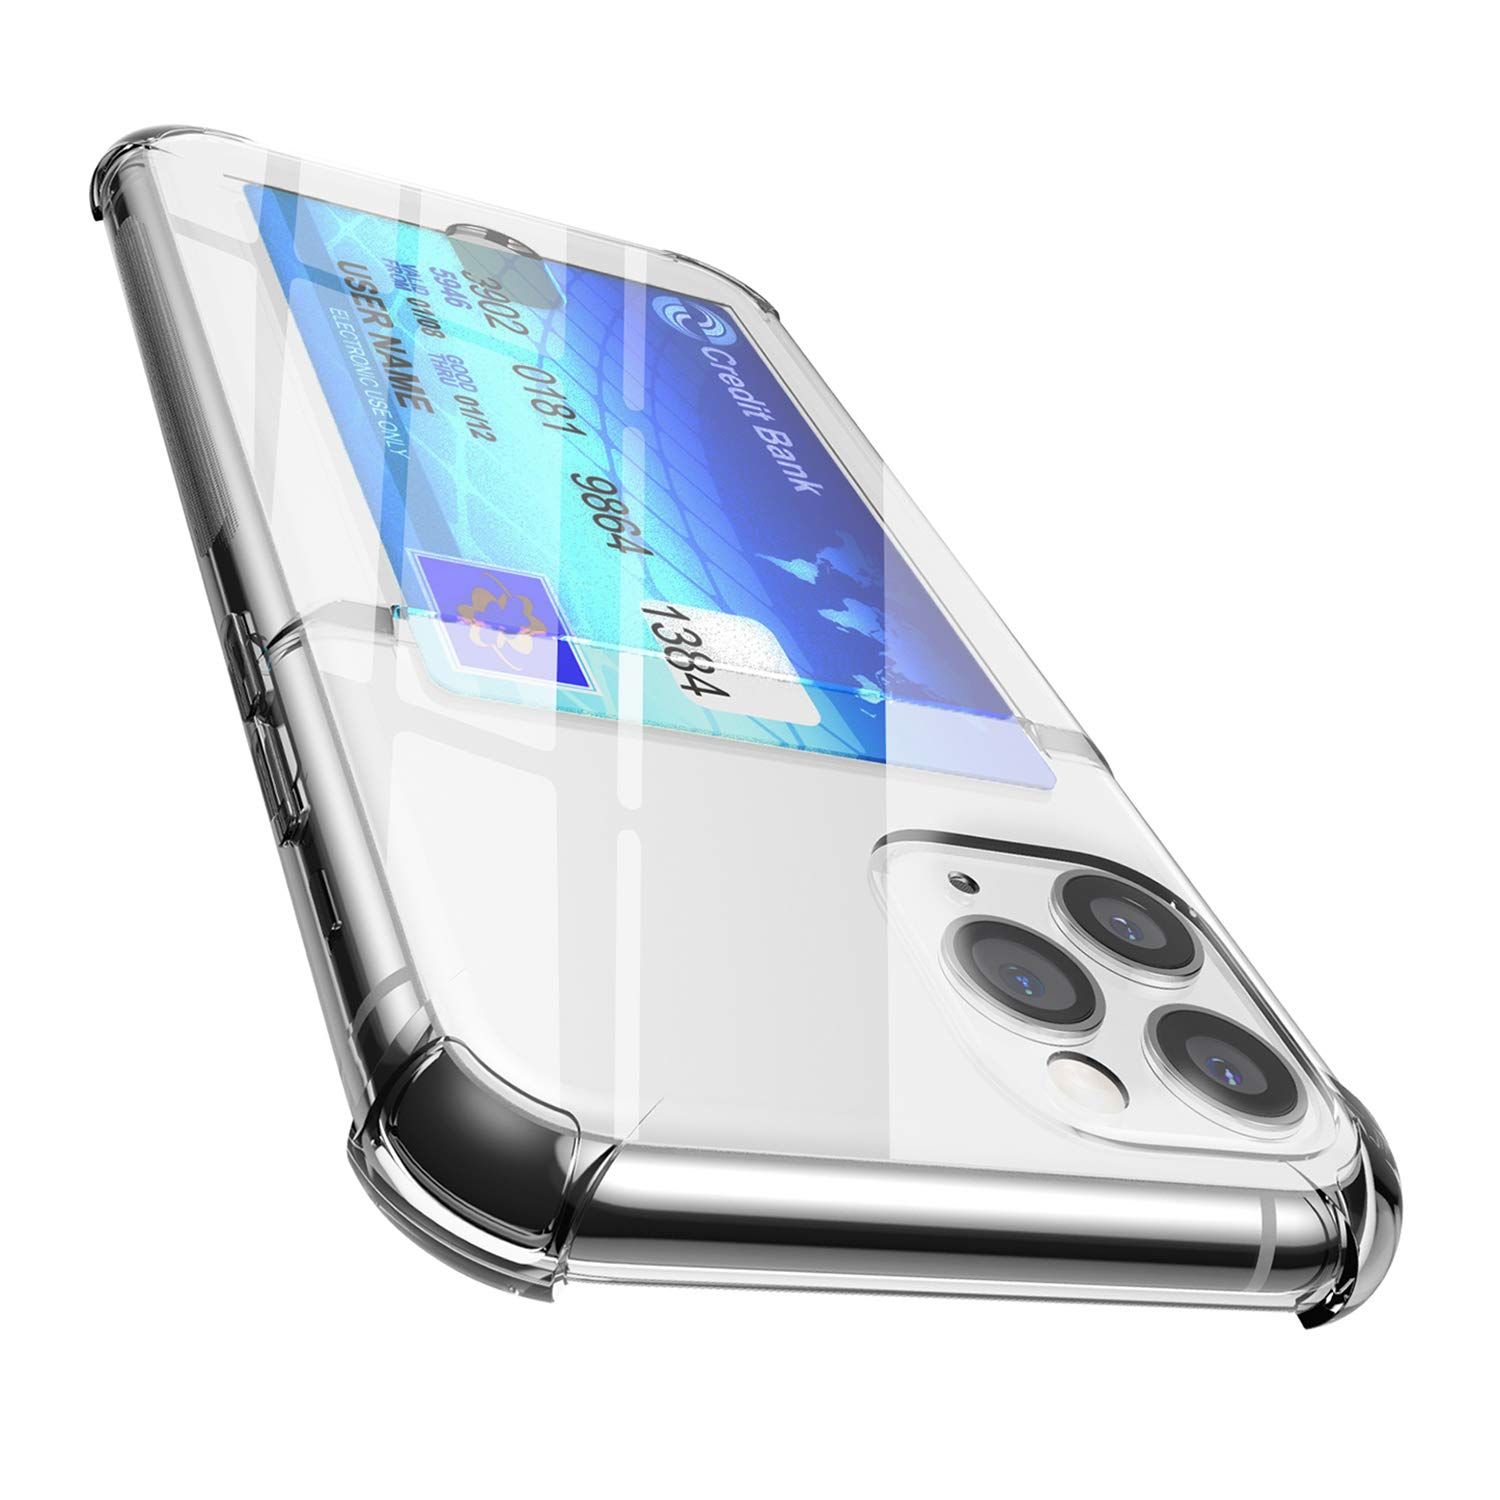 ANHONG iPhone 11 Pro Max Clear Case with Card Holder, [Slim Fit][Wireless Charger Compatible] Protective Soft TPU Shock-Absorbing Bumper Case